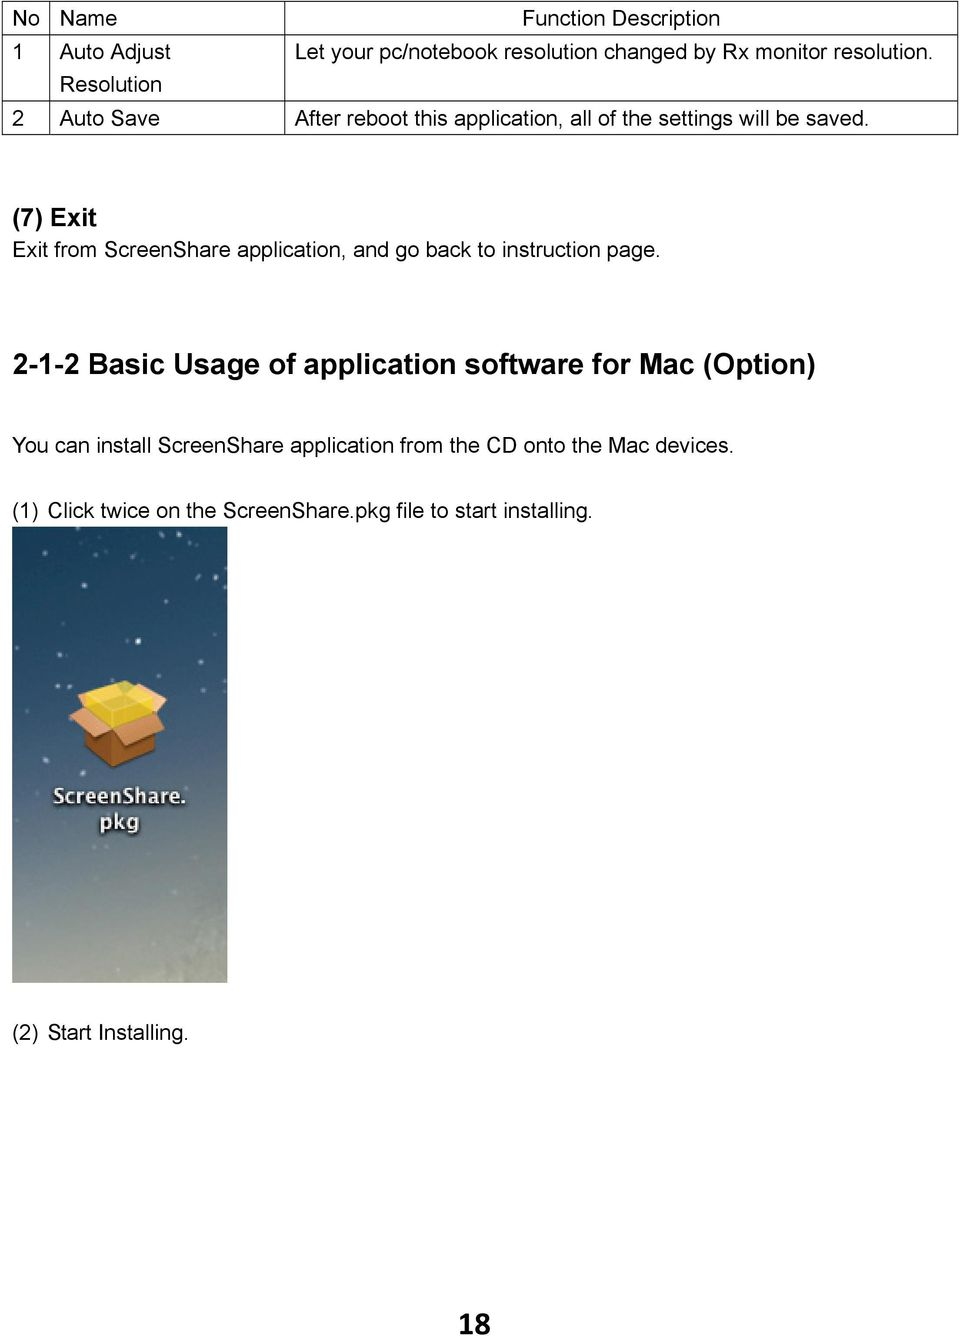 (7) Exit Exit from ScreenShare application, and go back to instruction page.